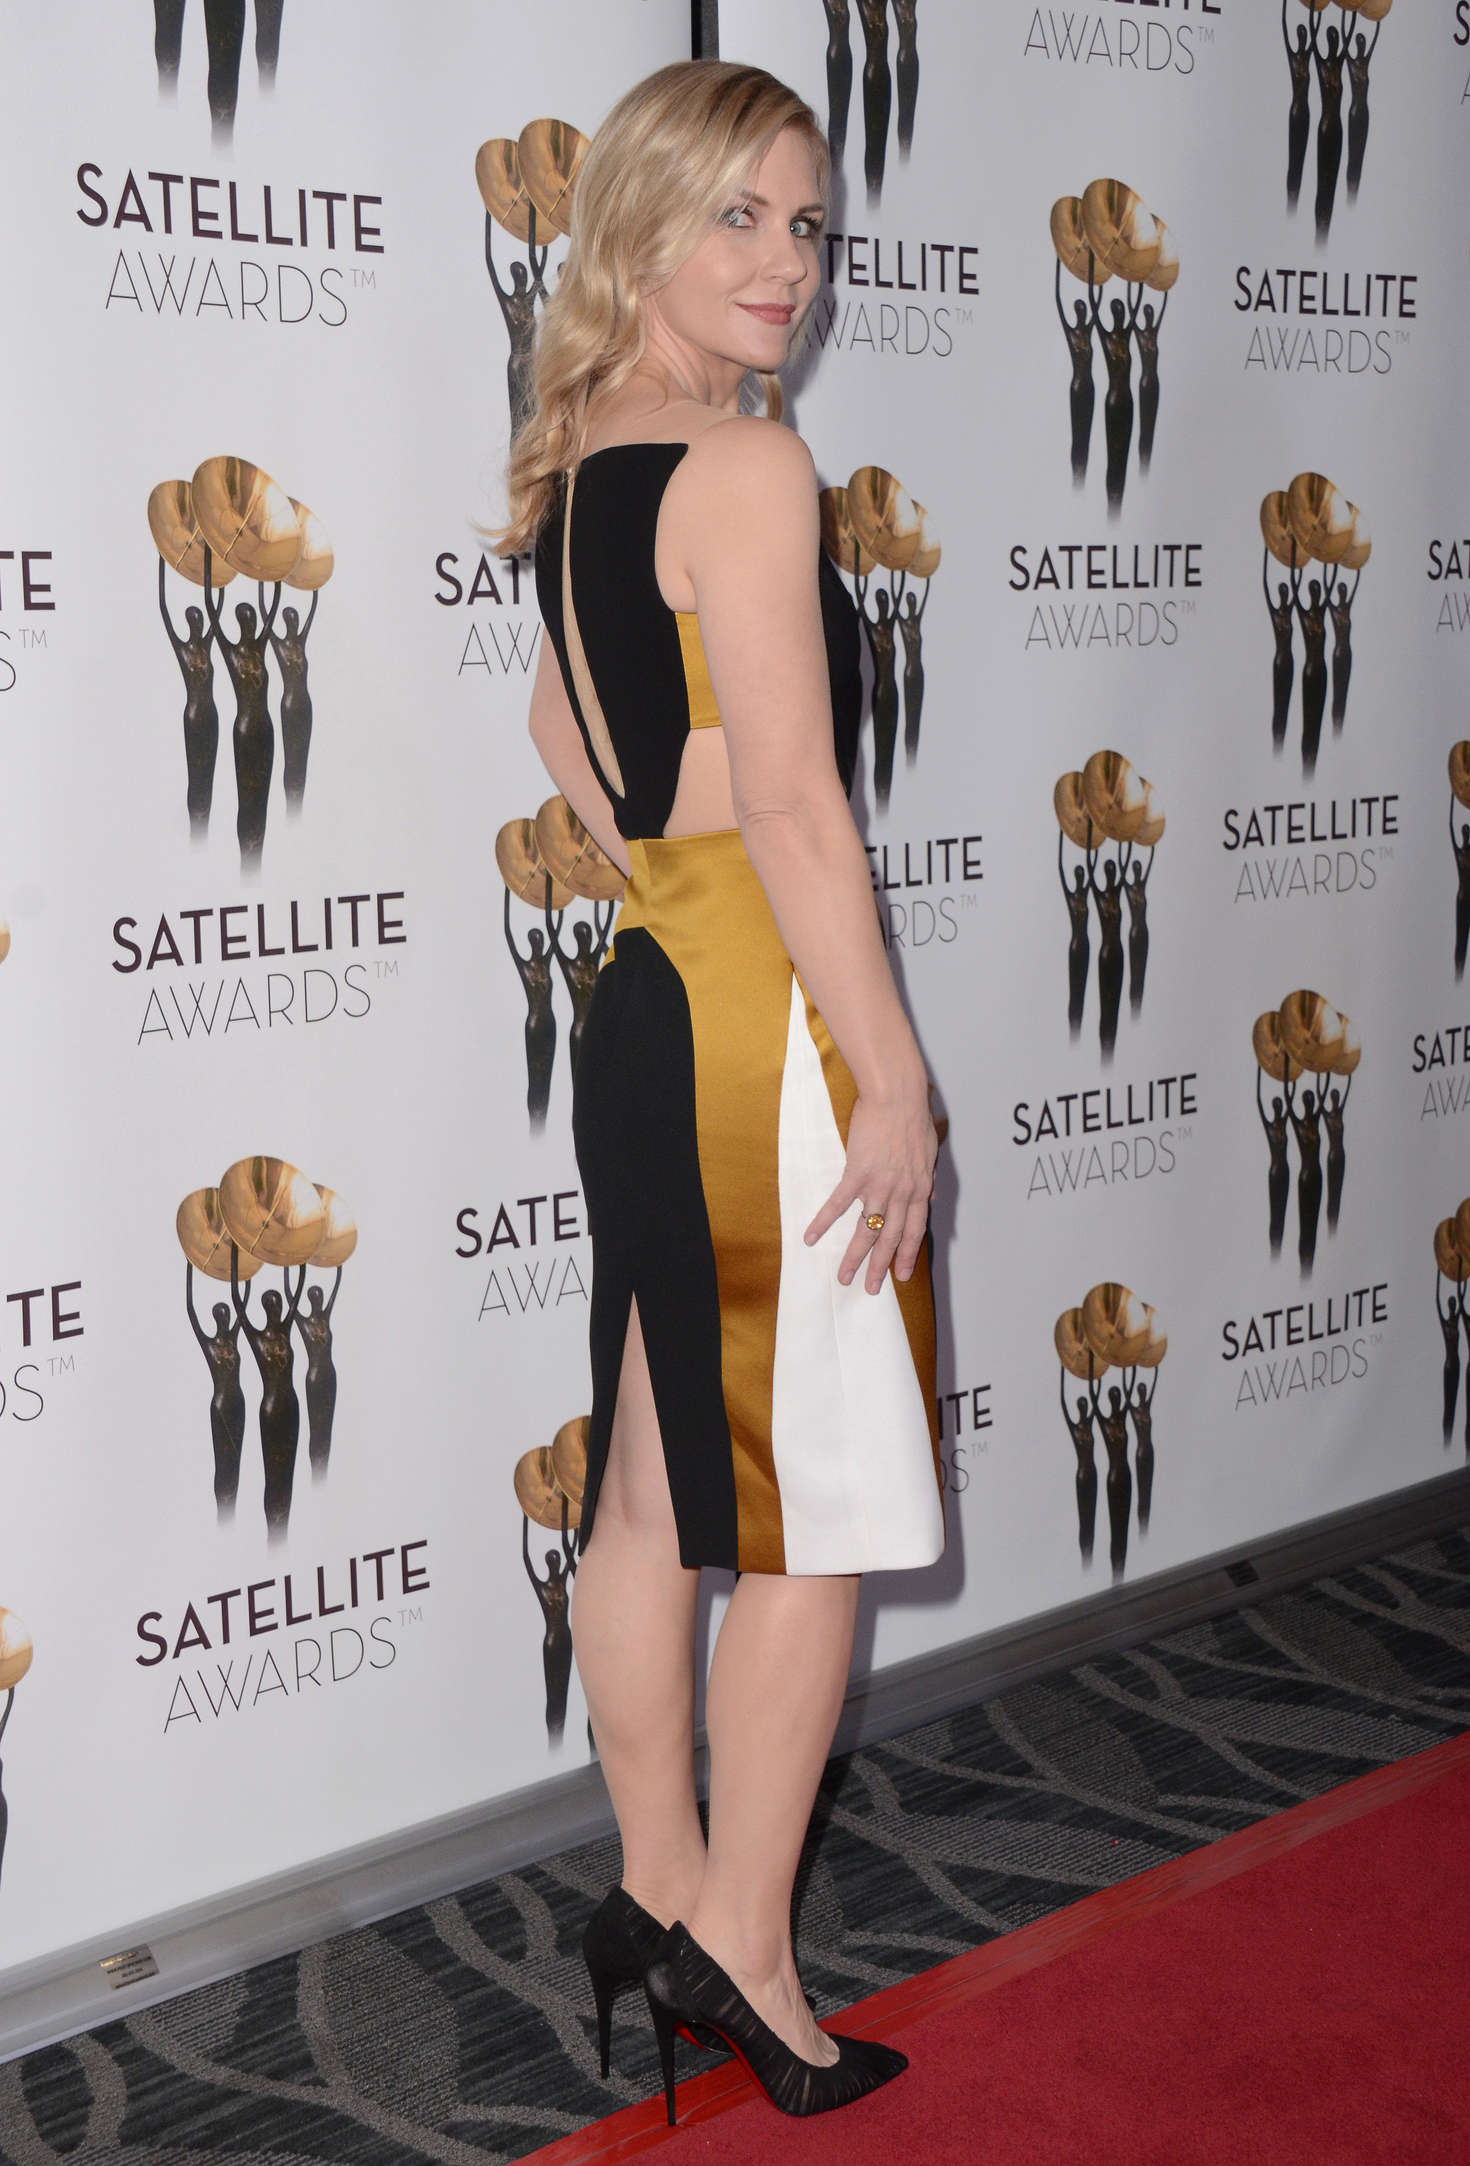 Rhea Seehorn Satellite Awards in Los Angeles